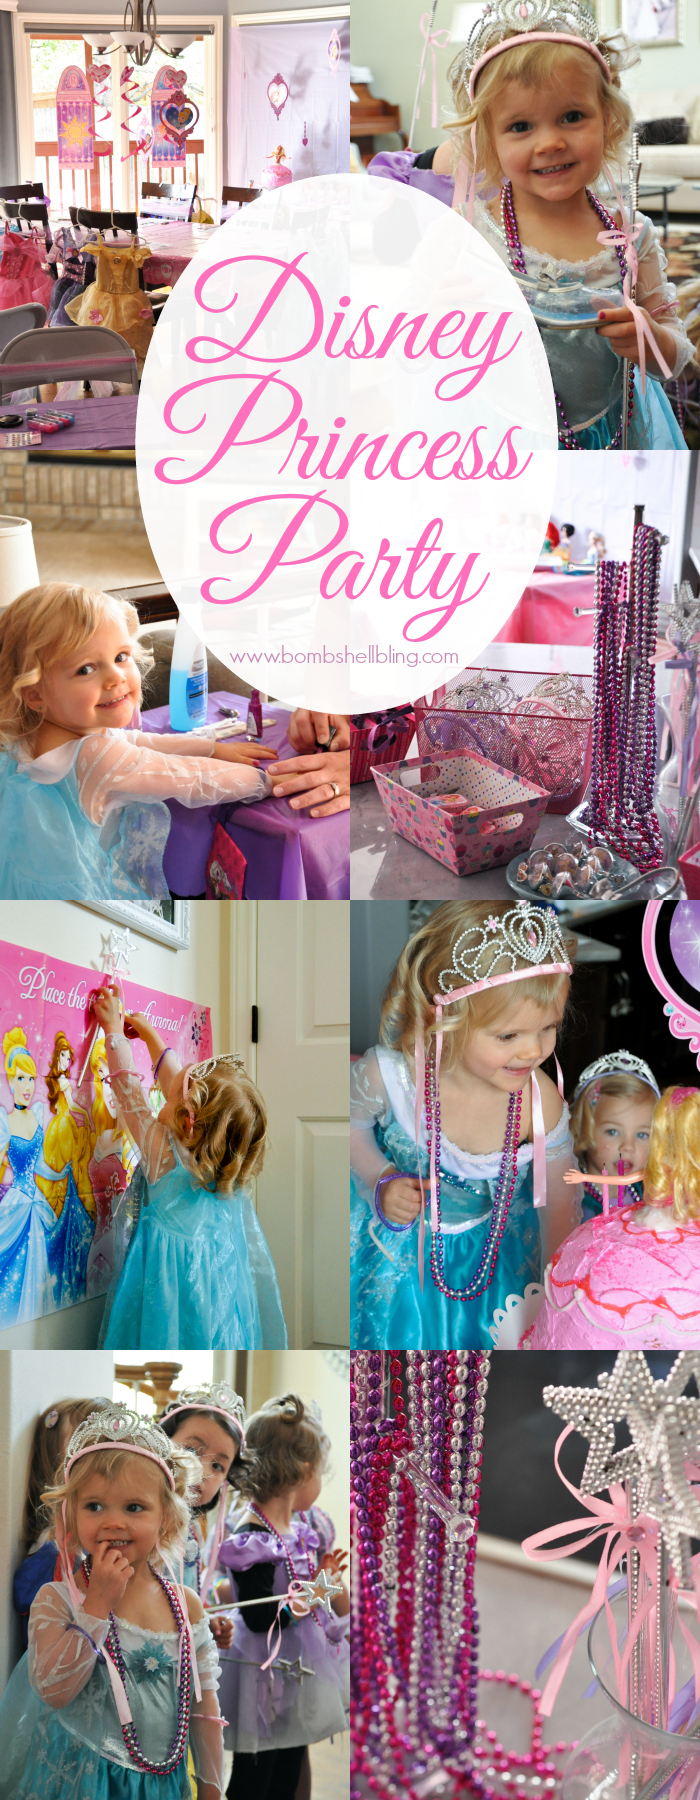 Disney princess party collage